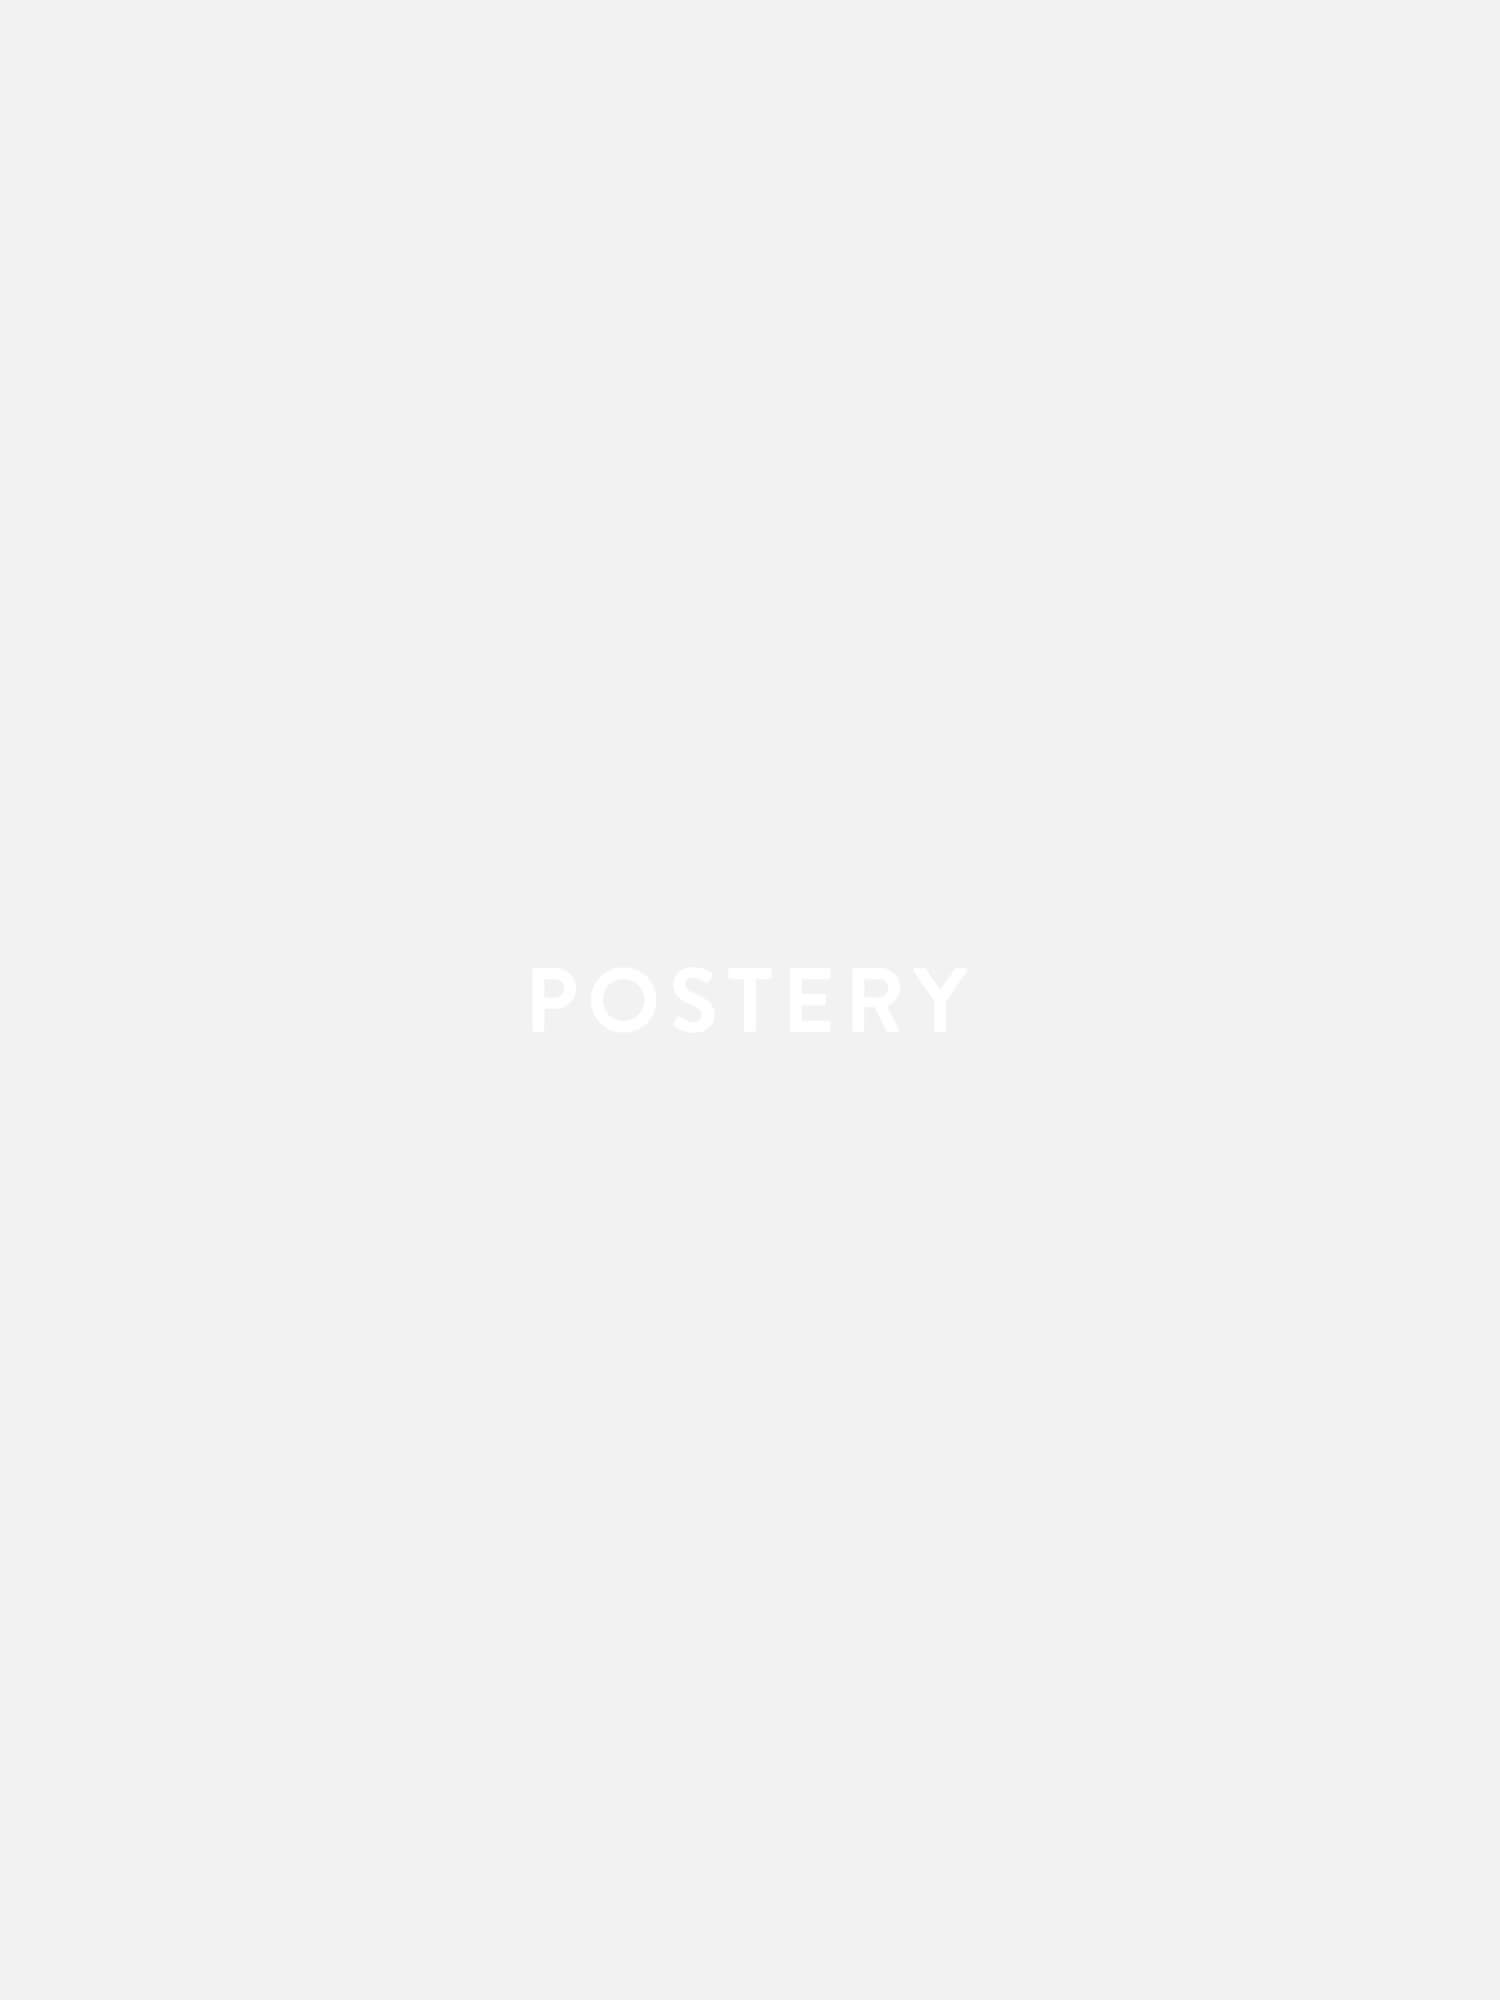 Vogue Golf Issue Poster